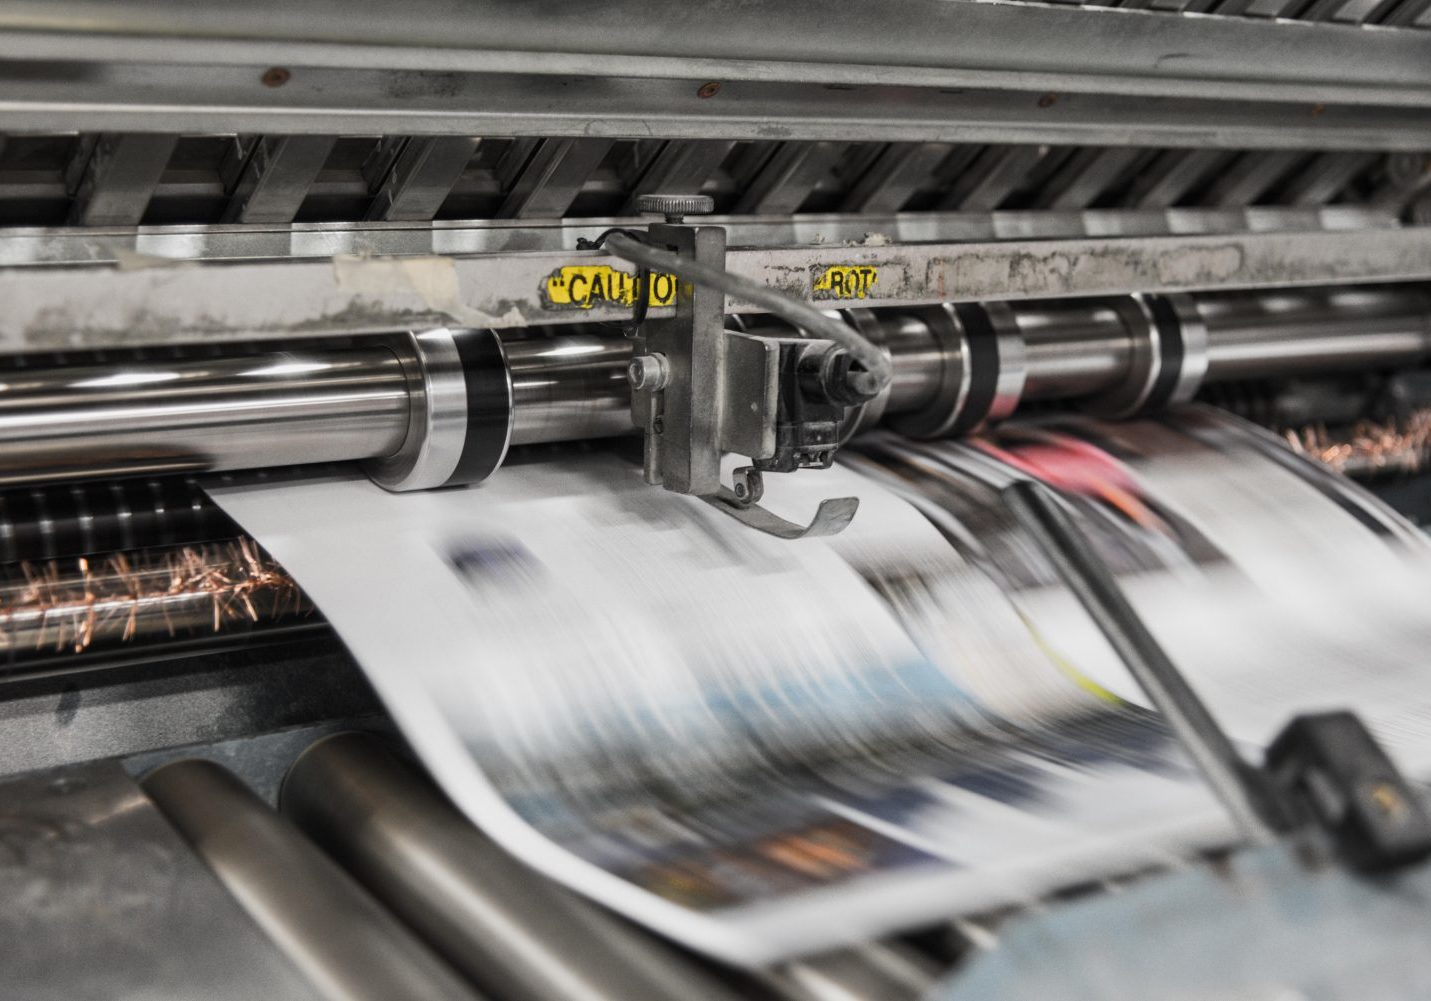 drukwerk uitbesteden krant drukken machine corporateprint